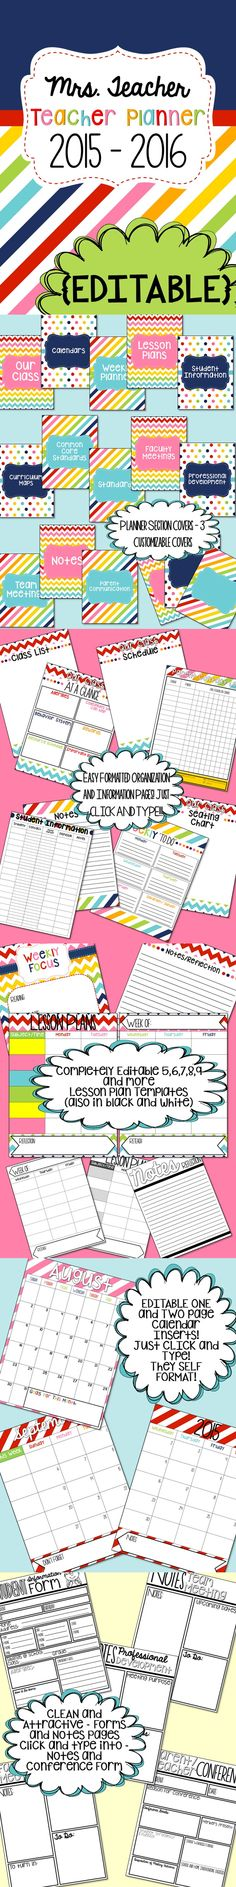 This Editable and CUSTOMIZABLE Teacher planner is AWESOME!!!